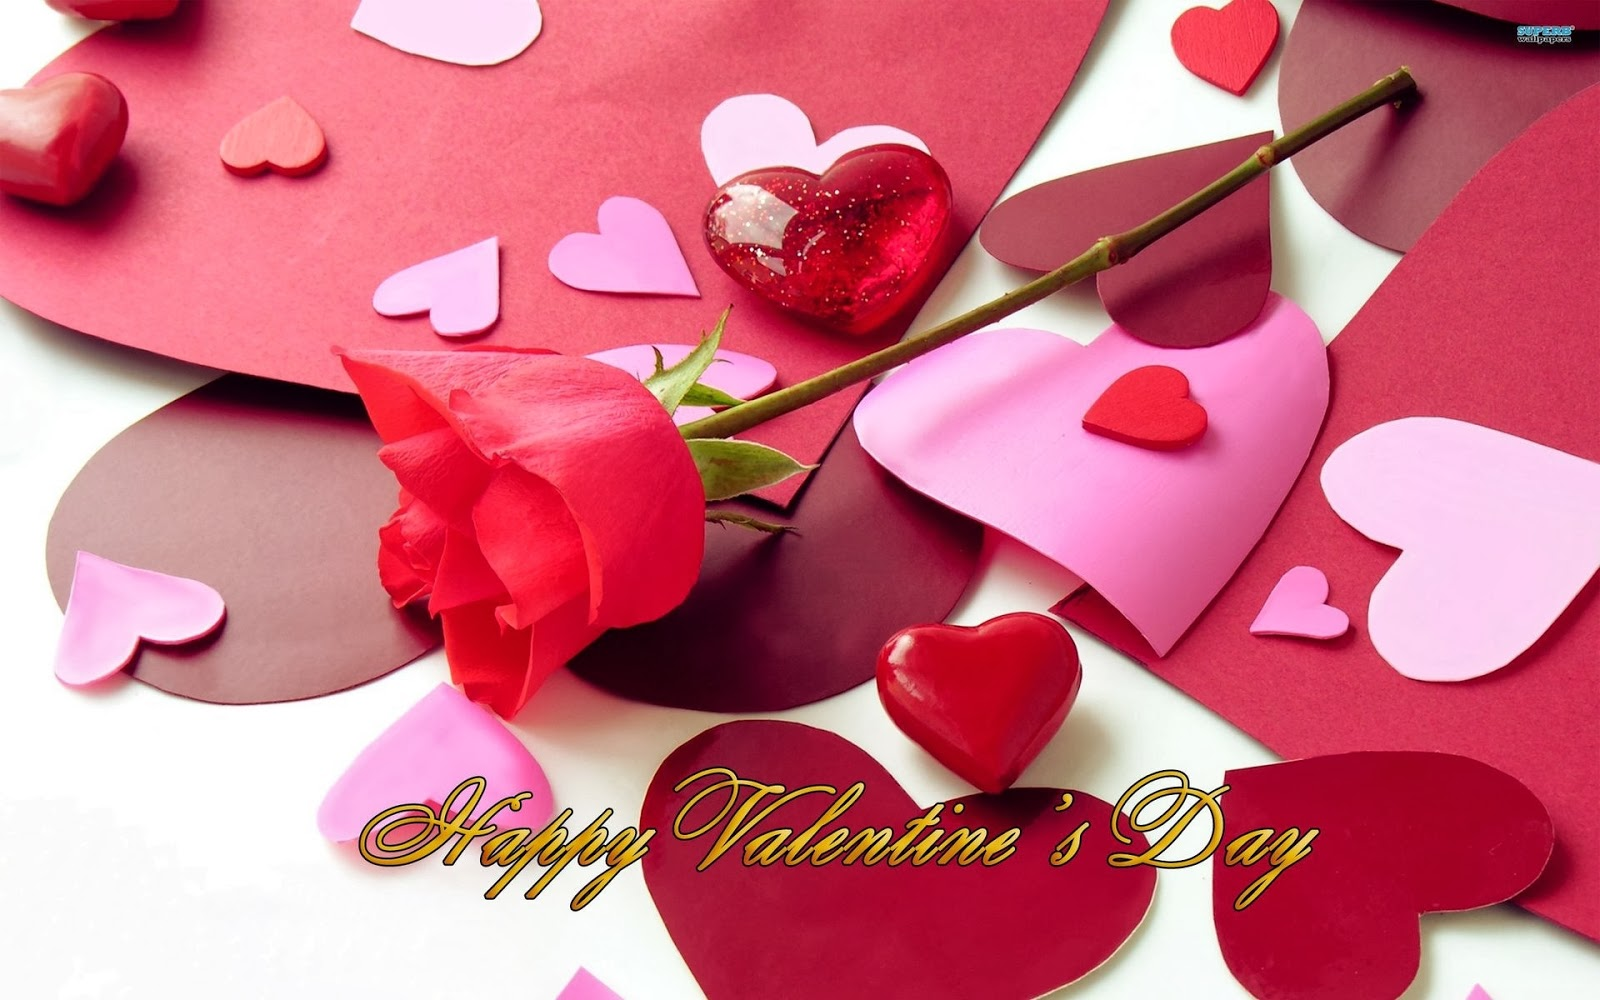 Happy-Valentines-day-card-with-Rose-HD-image-for-facebook.jpg